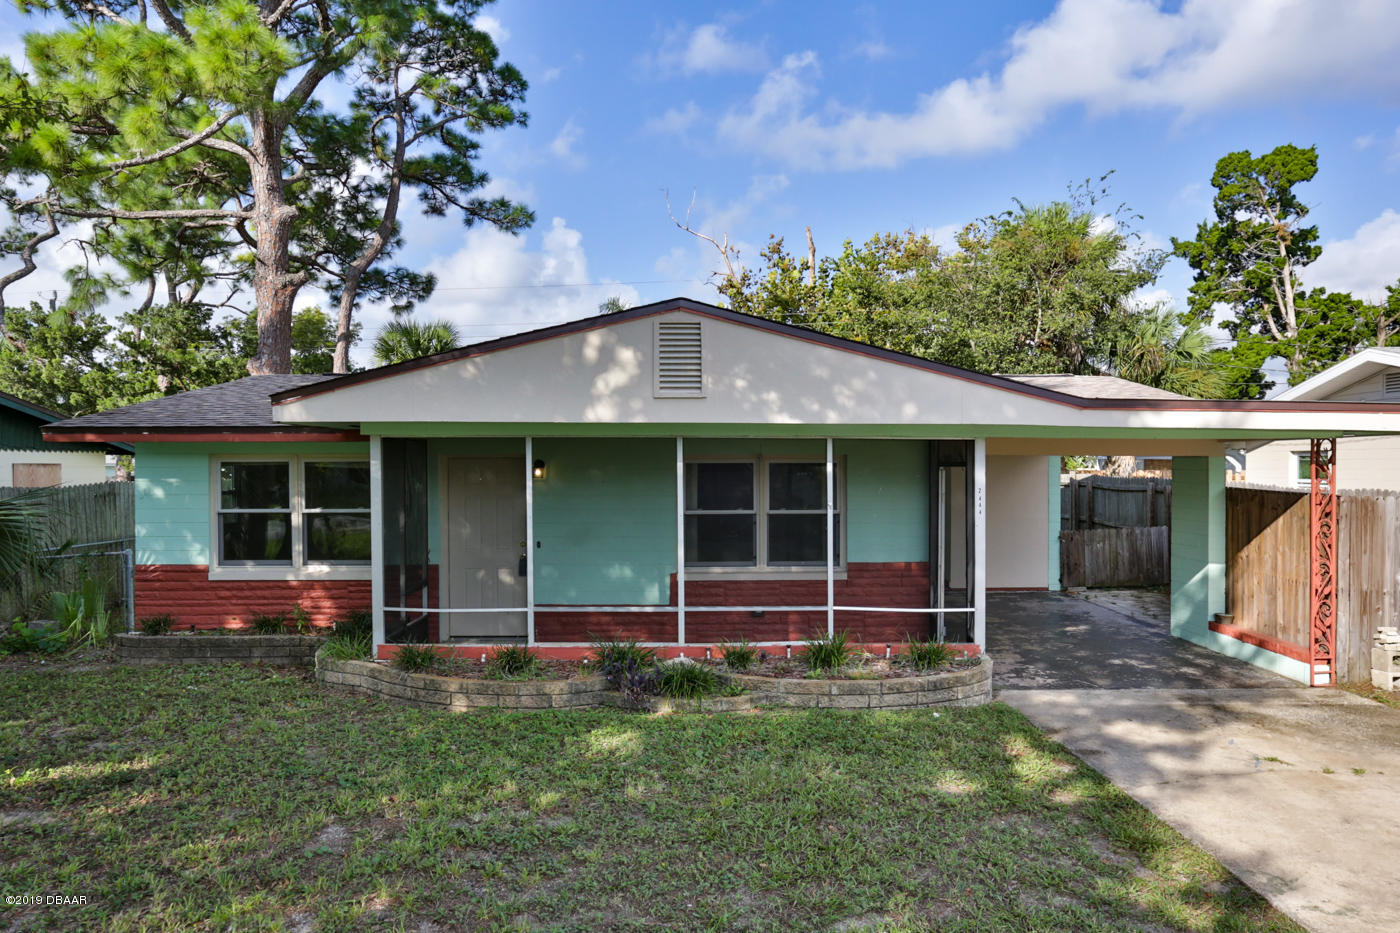 One of South Daytona 2 Bedroom Homes for Sale at 2444 Yale Road